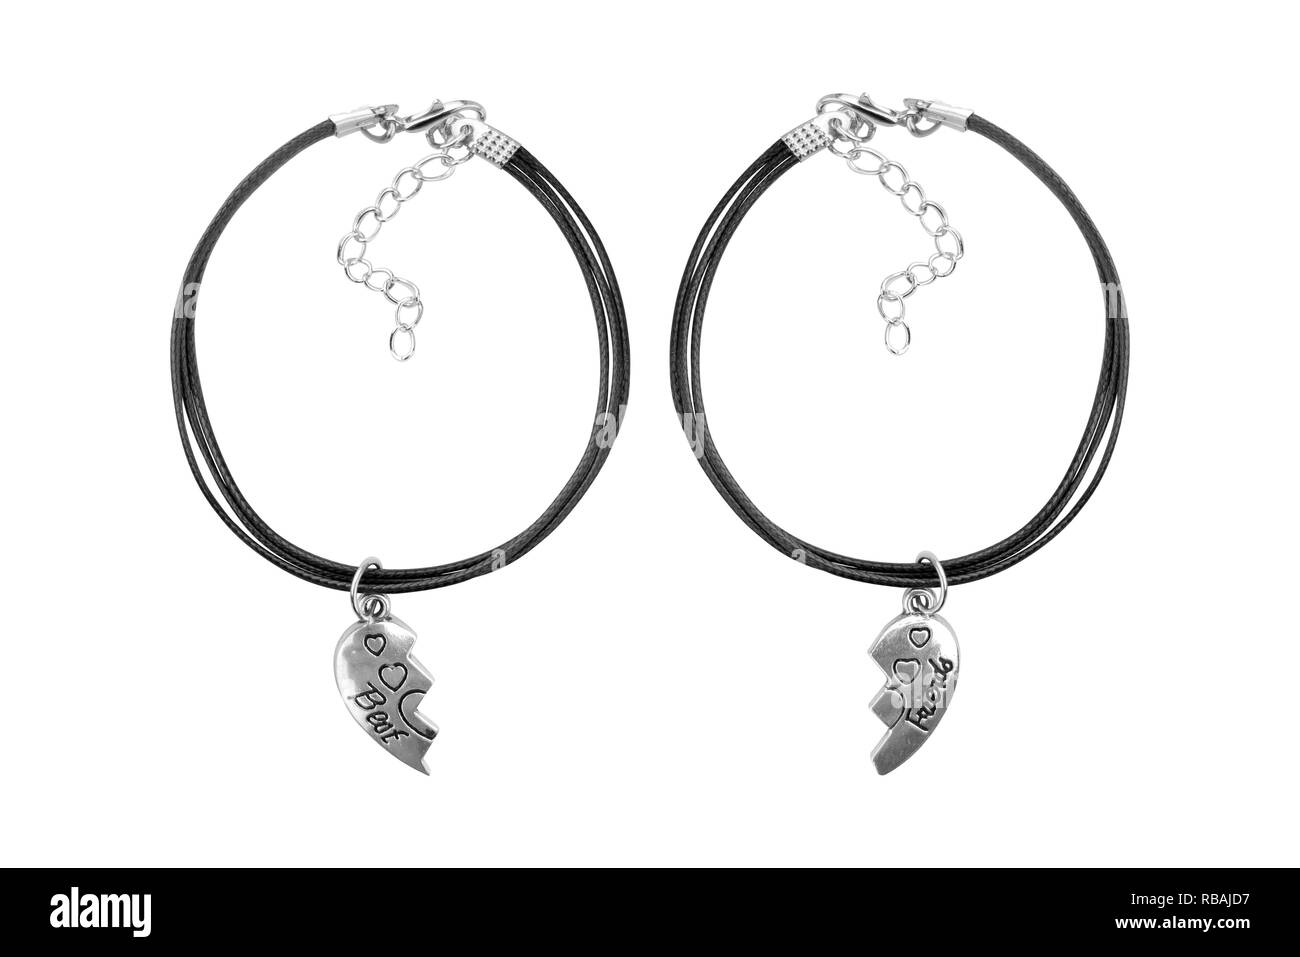 Silver and black textile adjustable bracelet with best friends pendant, isolated on white background, clipping path included - Stock Image